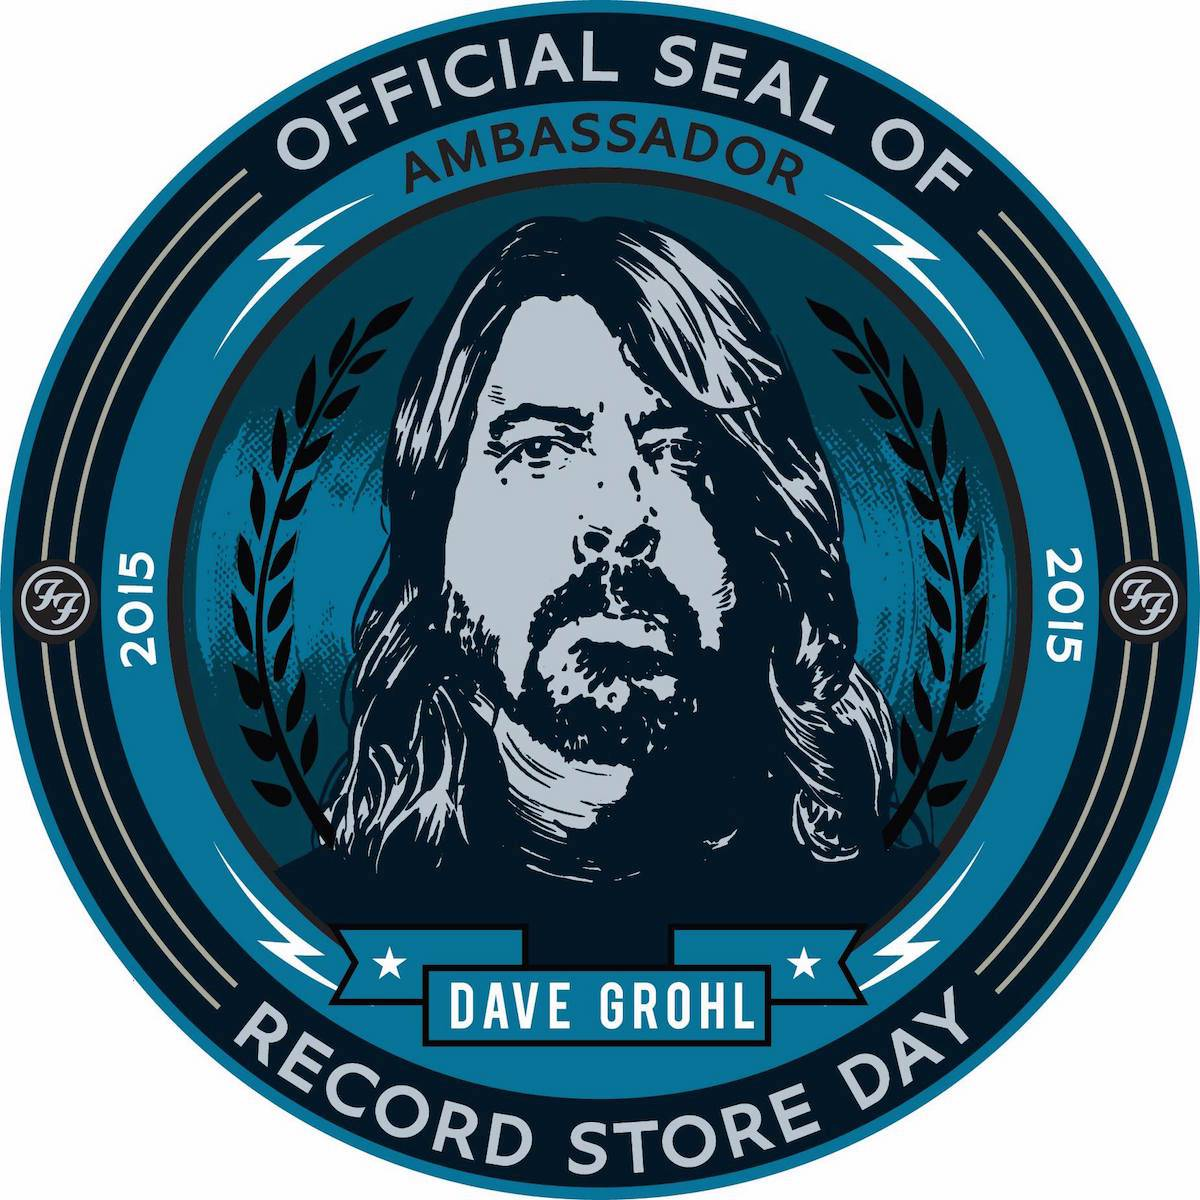 dave-grohl-record-store-day-2015-embaixador